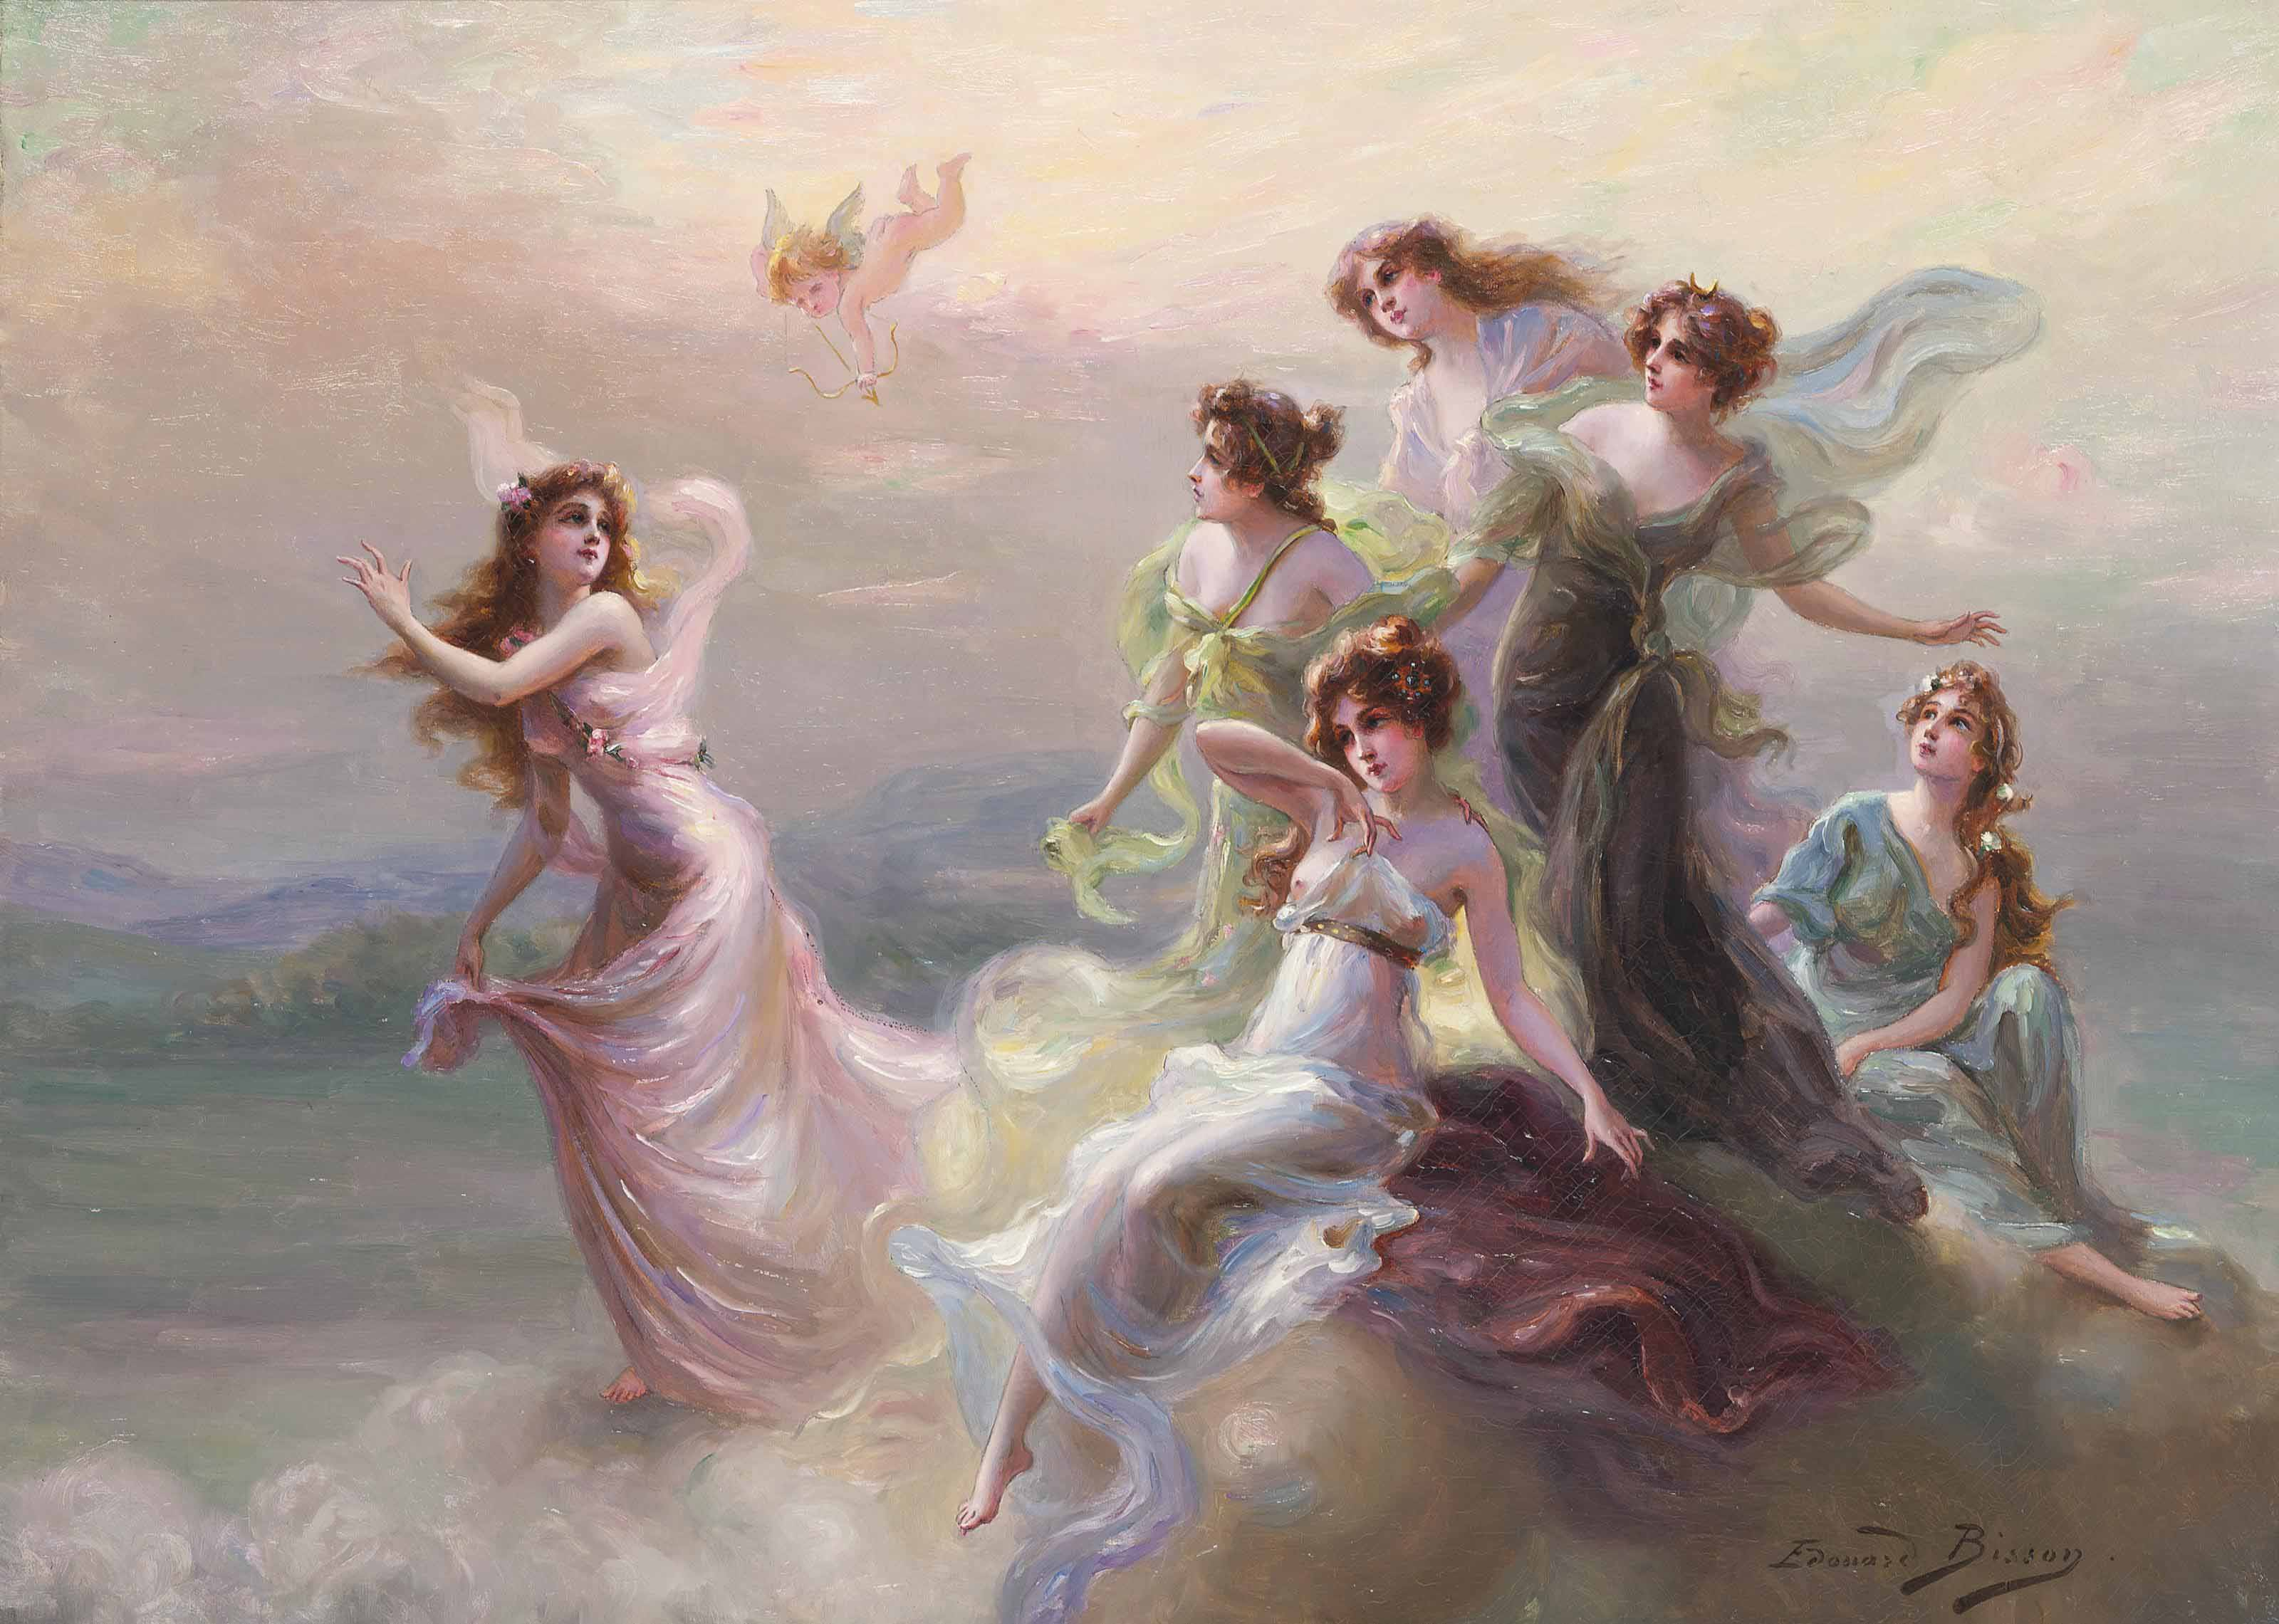 The dance of the nymphs